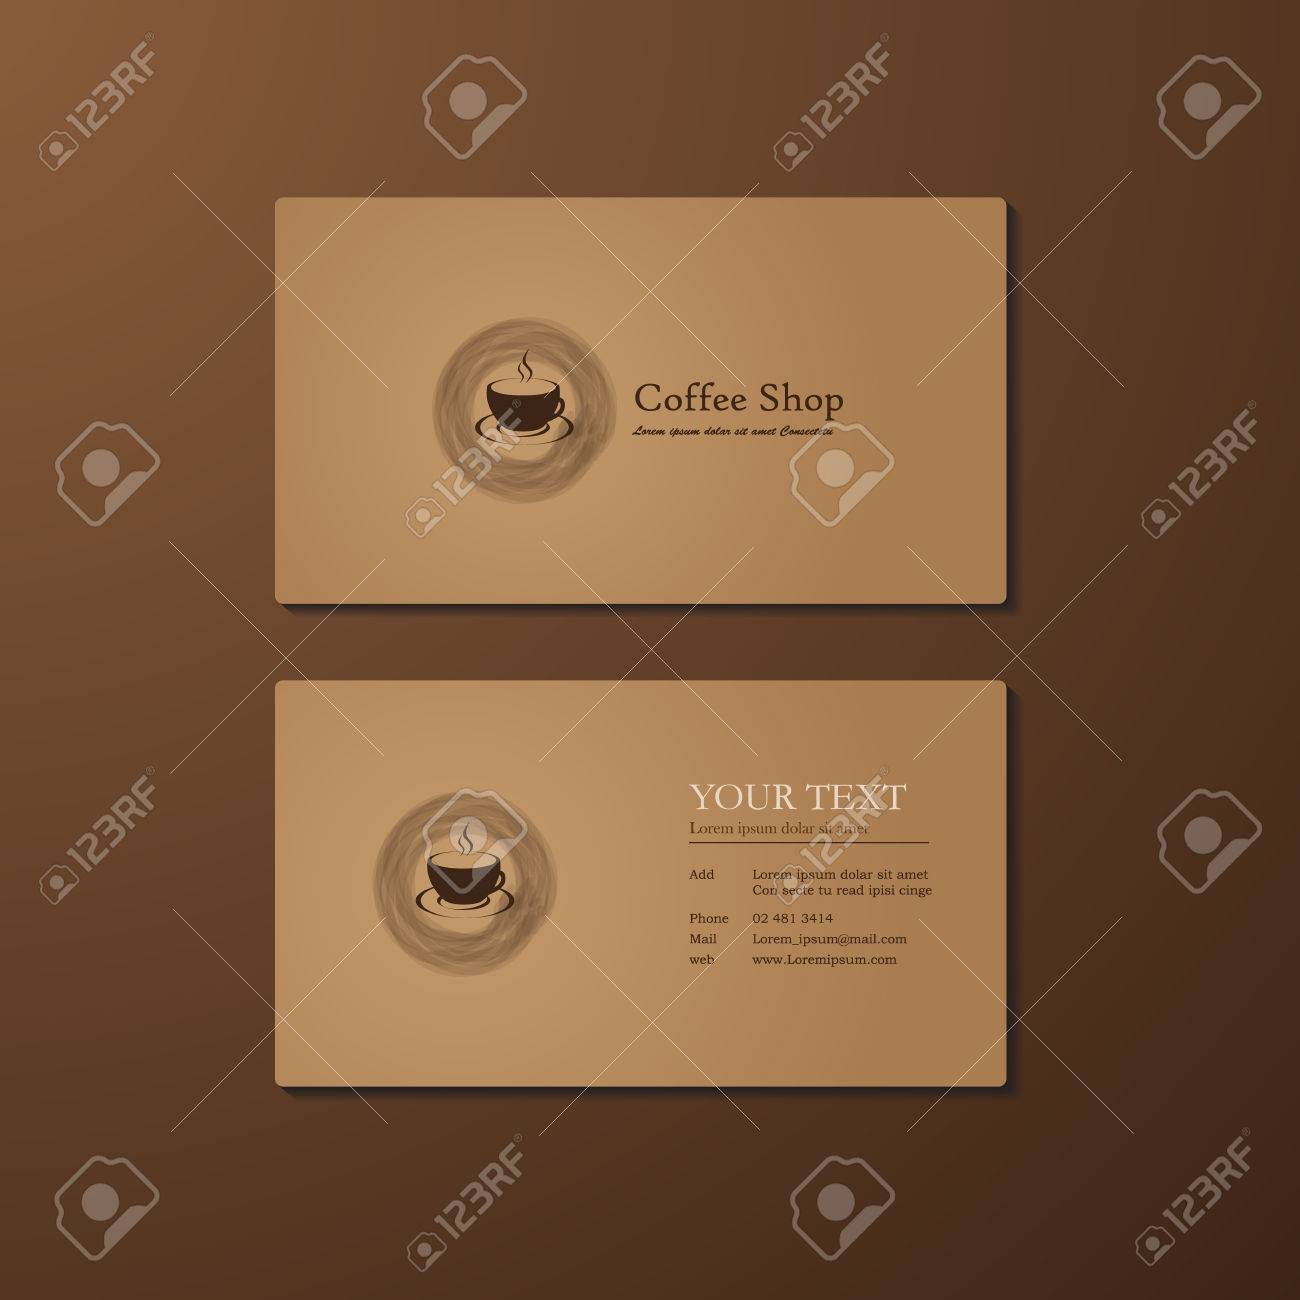 Business Card Coffee Shop Royalty Free Cliparts, Vectors, And Stock ...